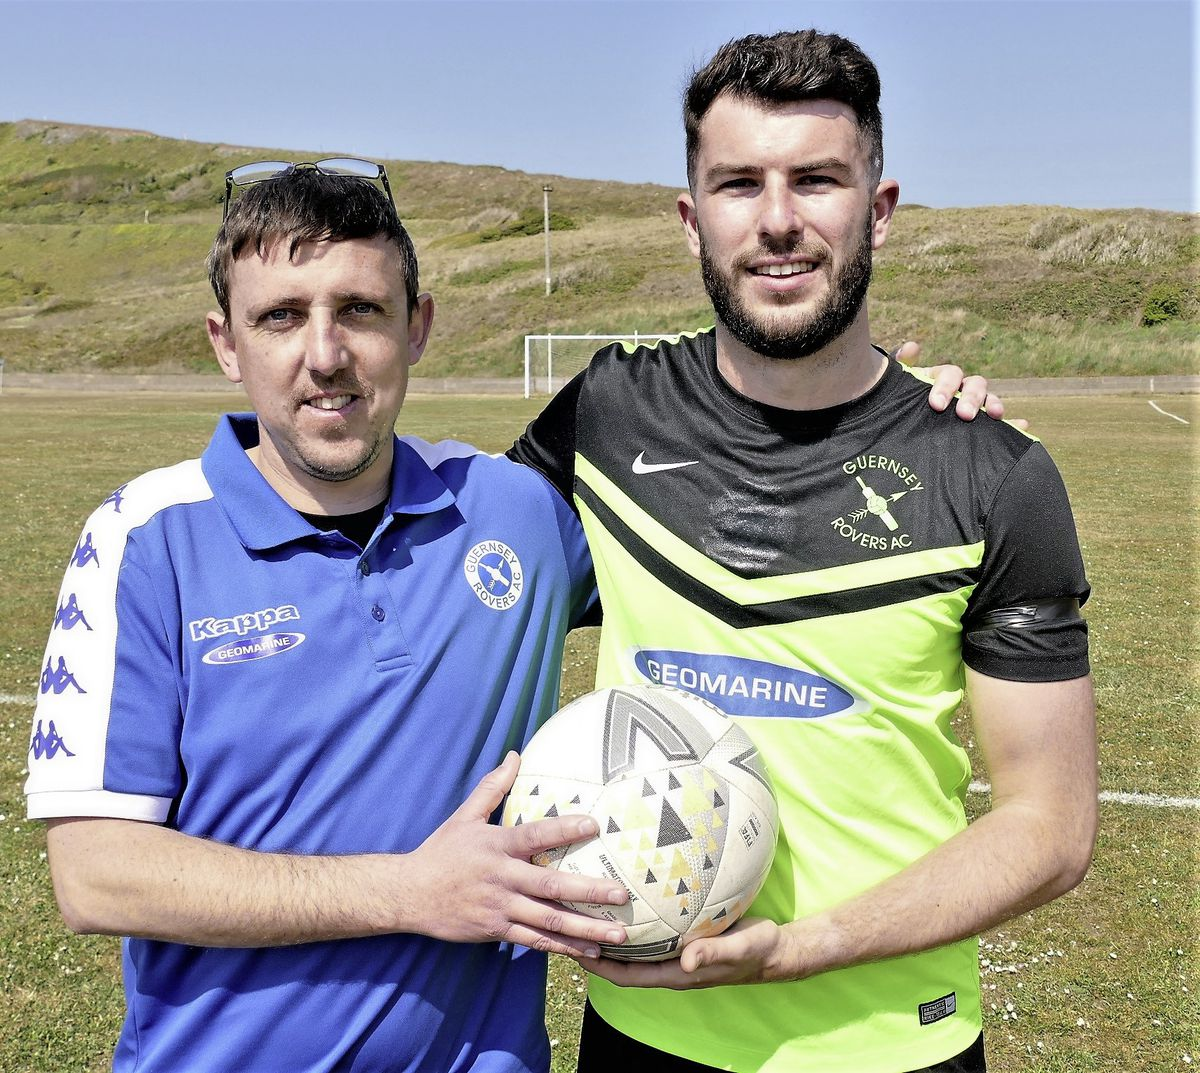 Grateful manager: Kevin Gillease with match-winner Blair Howitt at Mount Hale. (Picture by David Nash, 29502297)